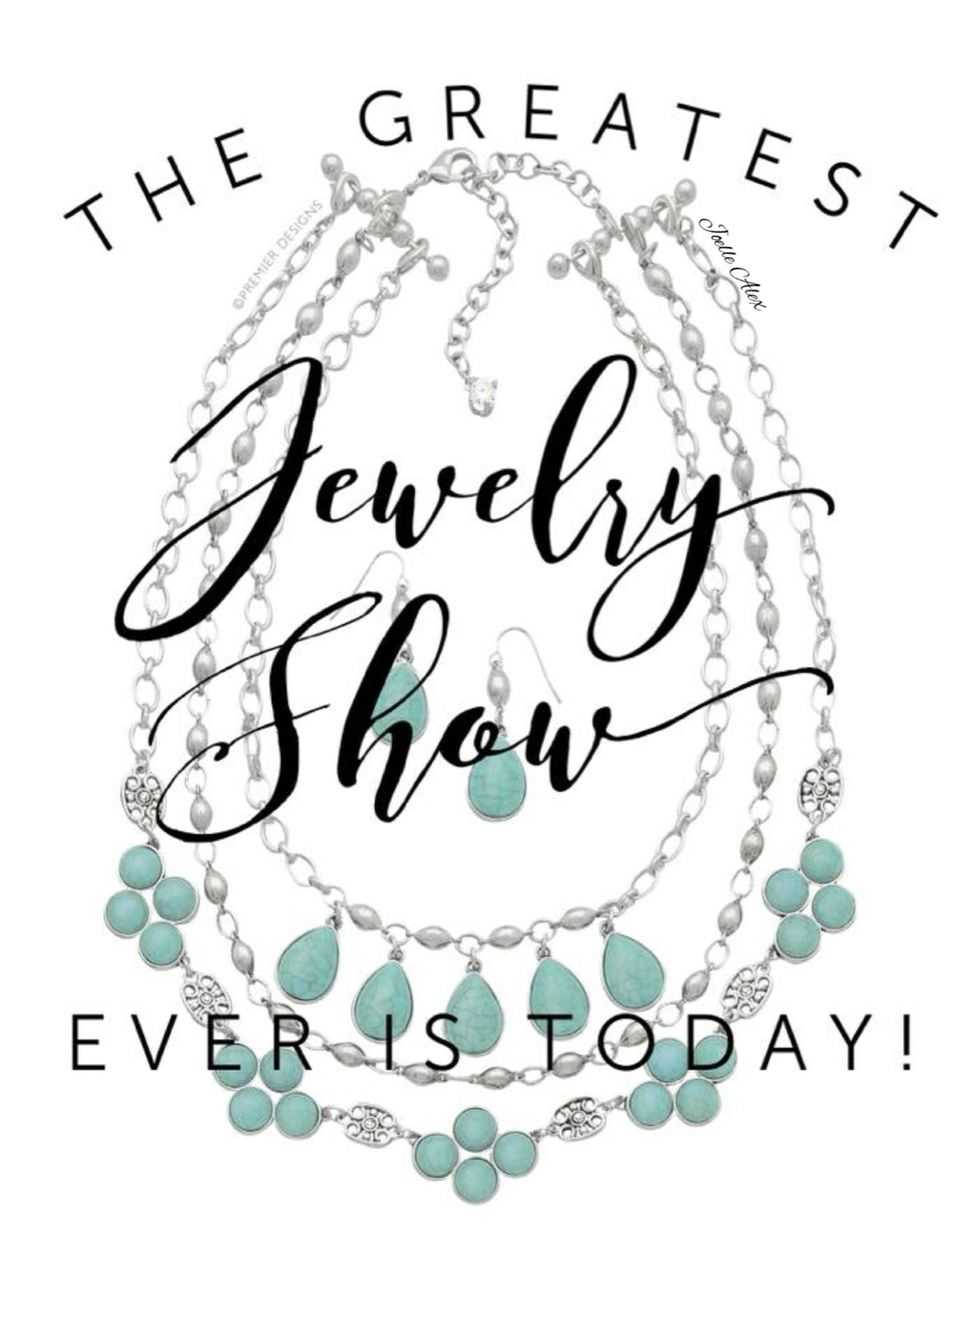 The greatest Premier Designs jewelry show ever is today… | PD ...